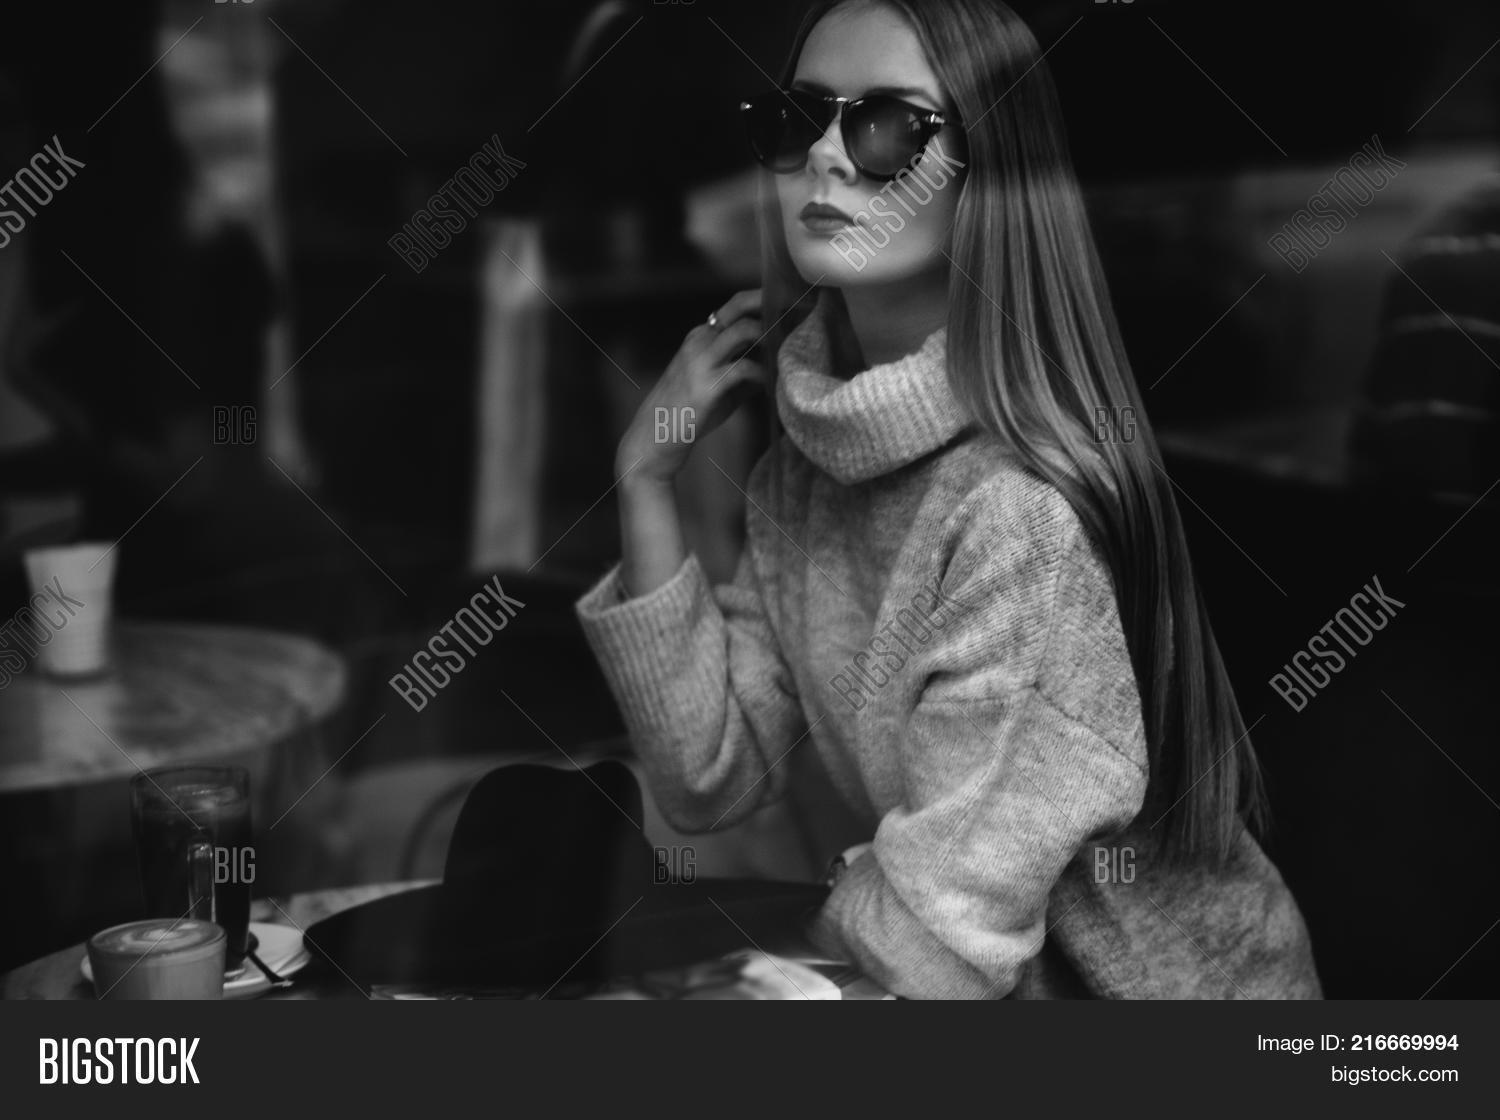 ed8d82e4c98 Portrait Of A Young Beautiful Fashionable Girl Wearing Sunglasses. Model In  A Stylish Black Hat